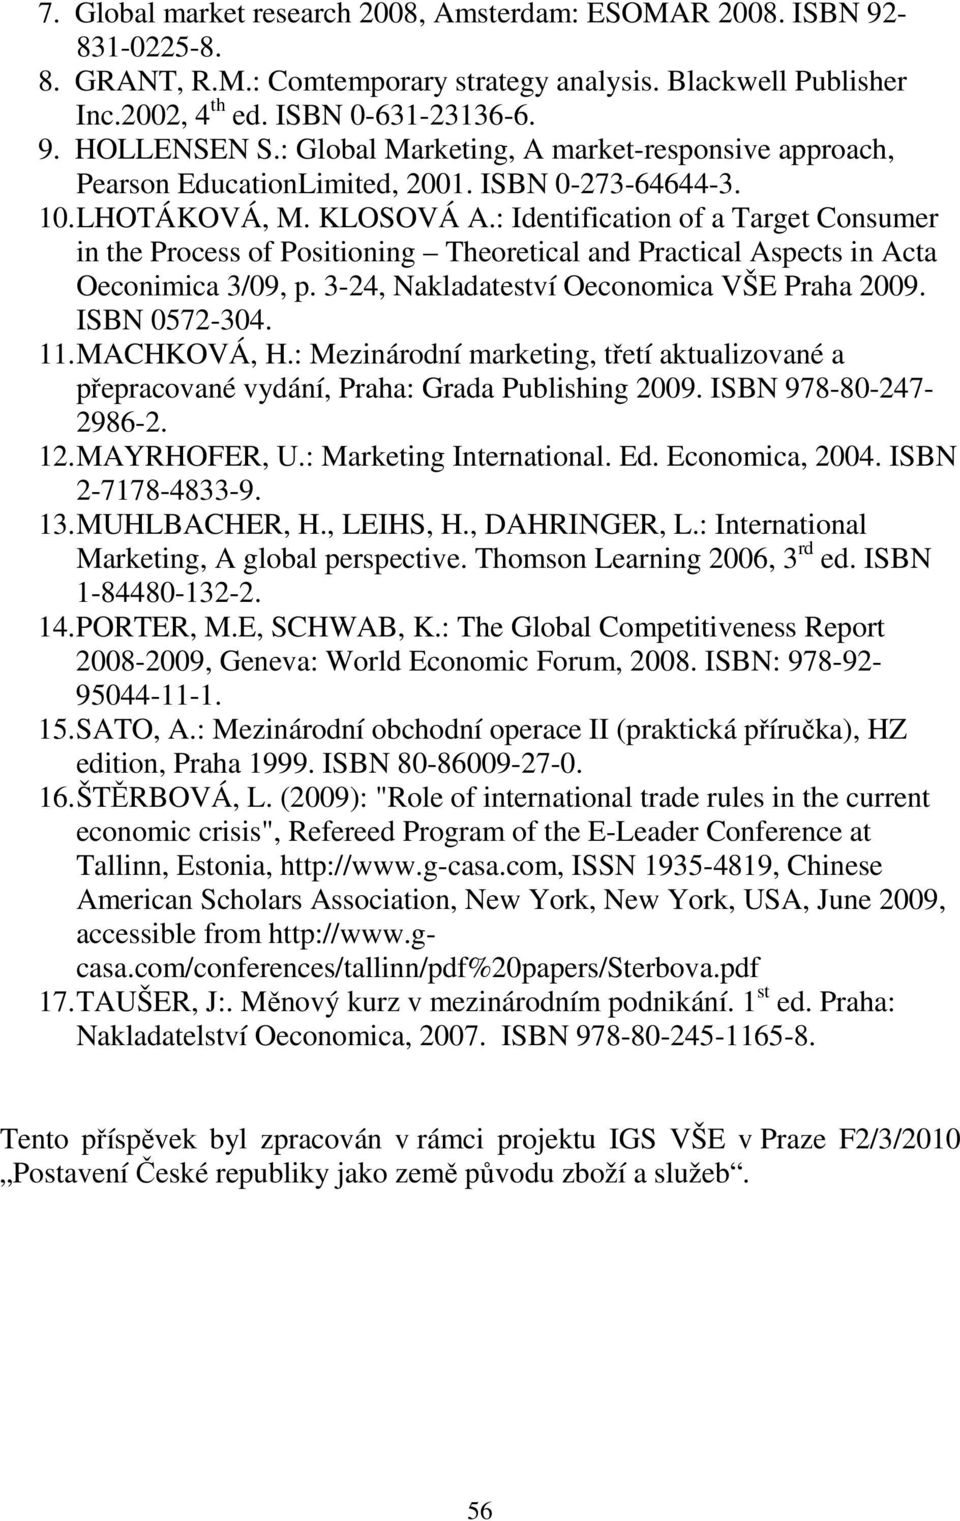 : Identification of a Target Consumer in the Process of Positioning Theoretical and Practical Aspects in Acta Oeconimica 3/09, p. 3-24, Nakladateství Oeconomica VŠE Praha 2009. ISBN 0572-304. 11.